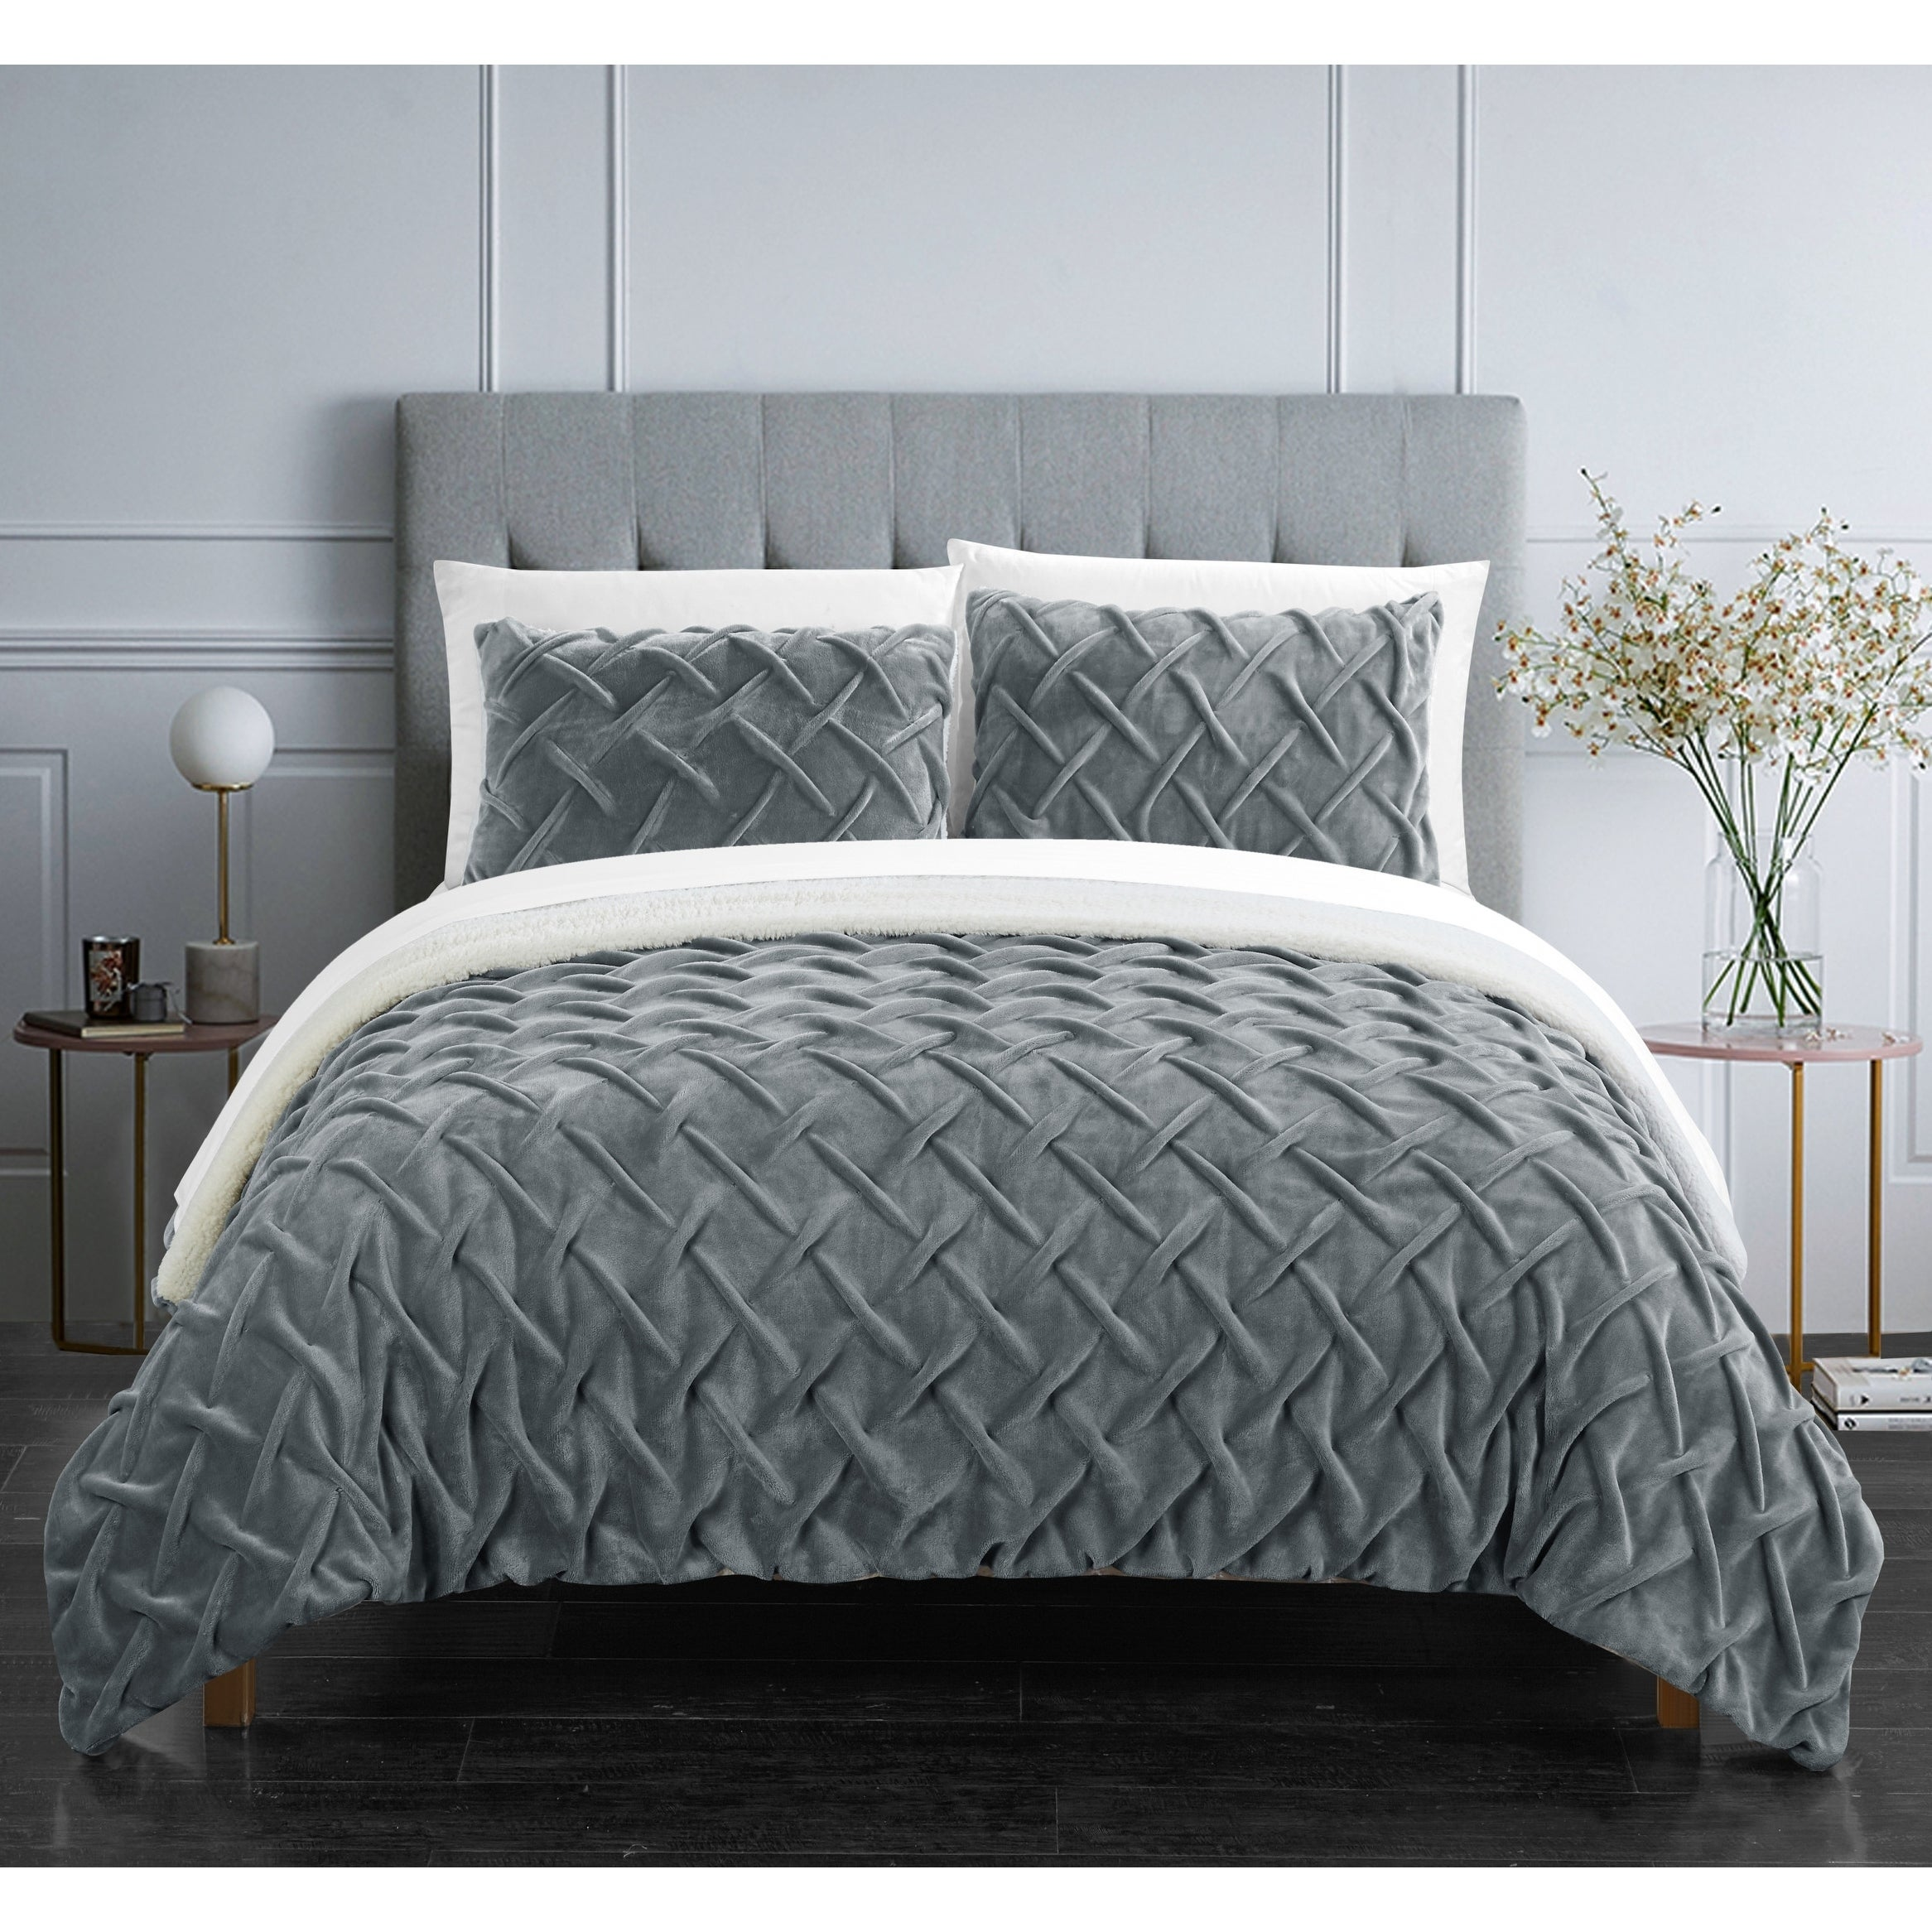 Chic Home Noam 3 Piece Ultra Plush Pinch Pleat Sherpa Lined Comforter Set Overstock 20759628 King